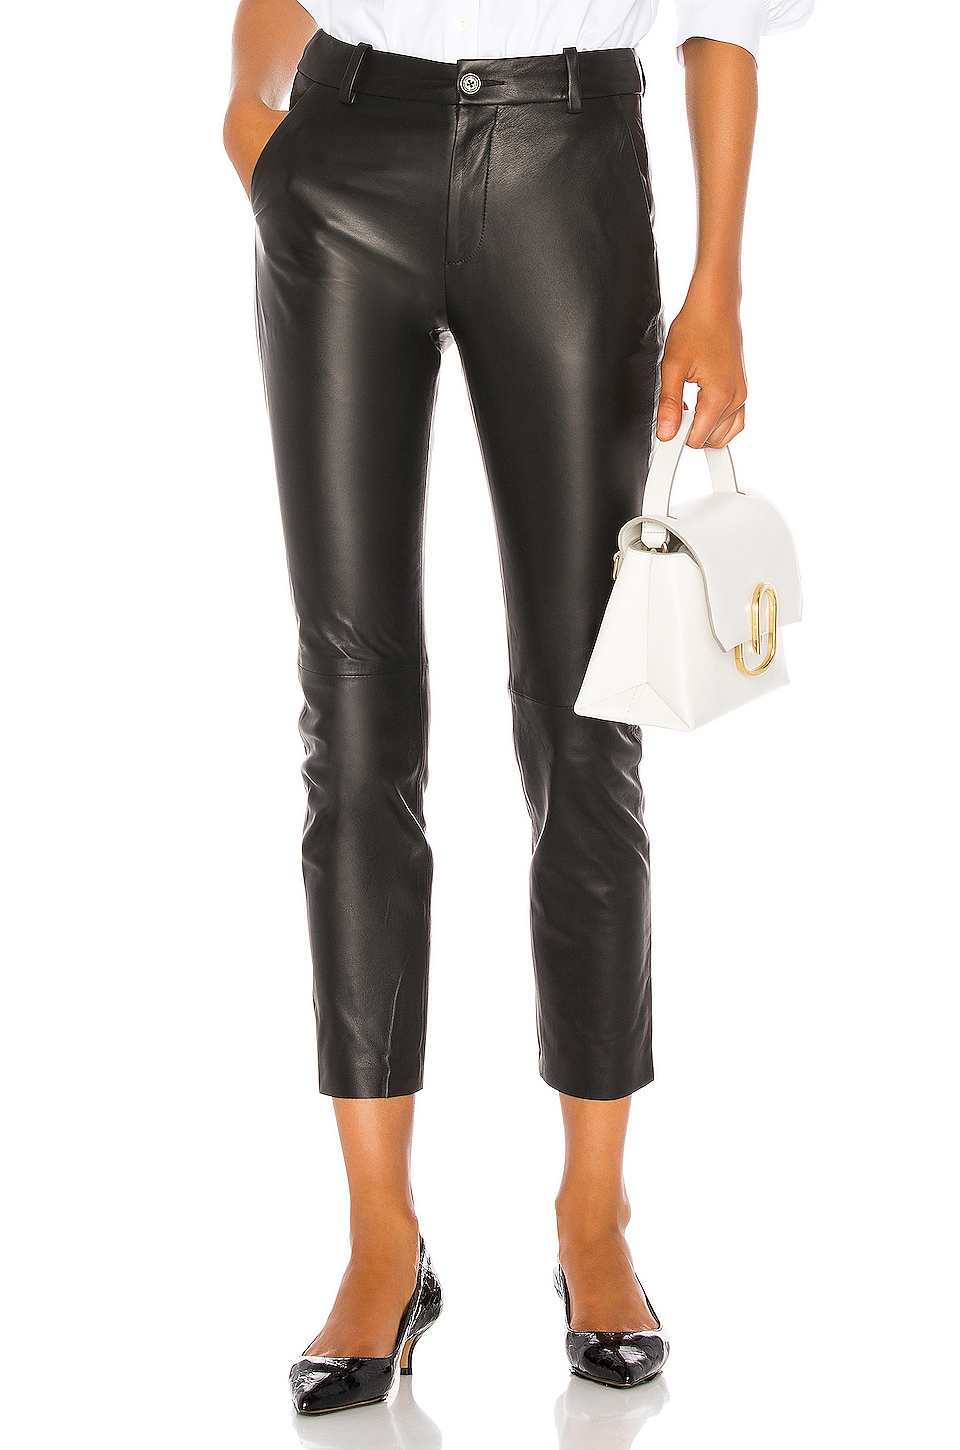 NILI LOTAN Montauk Leather Pant in Black